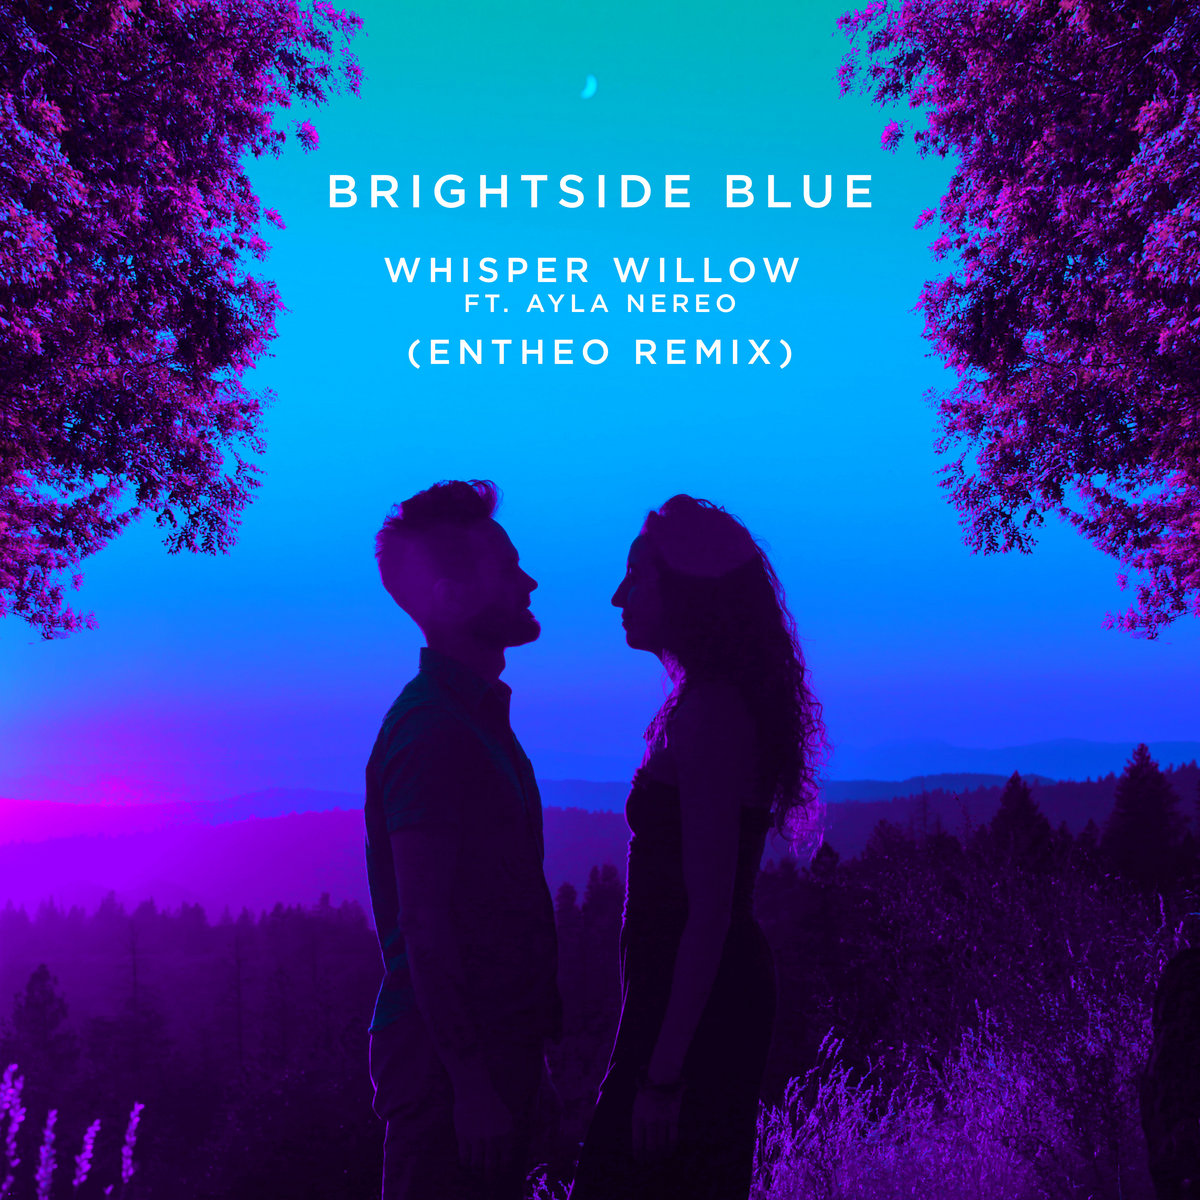 Whisper Willow (Entheo Remix) by BrightSide Blue feat. Ayla Nereo